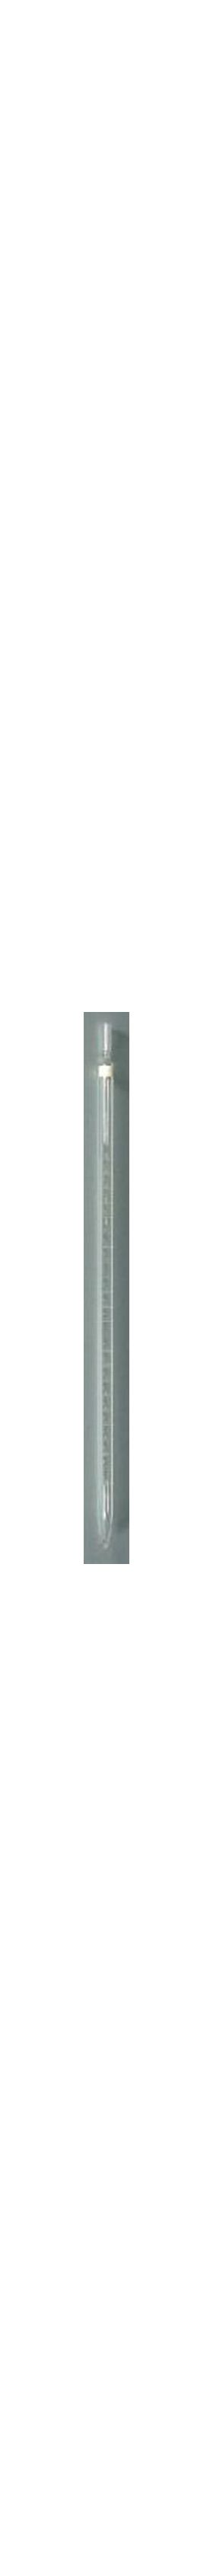 7-6107 Mohr Glass Pipette 15 mL